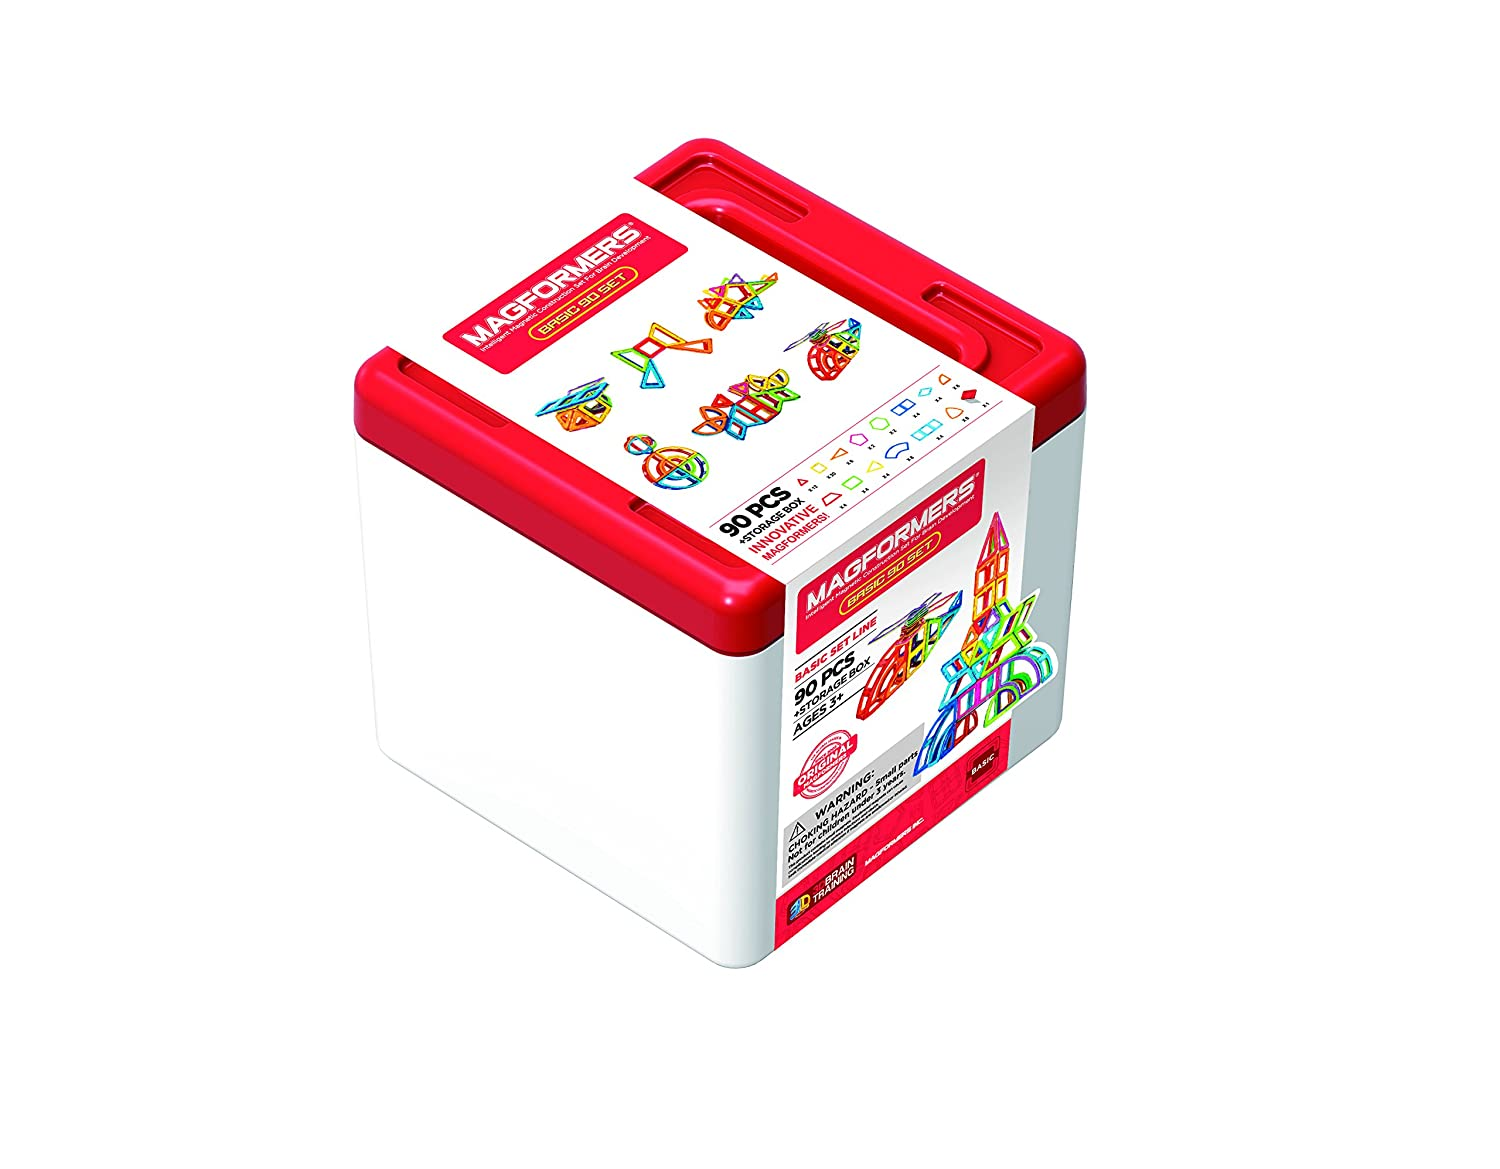 Magformers 701014 90-Piece Magnetic Construction Set con Scatola